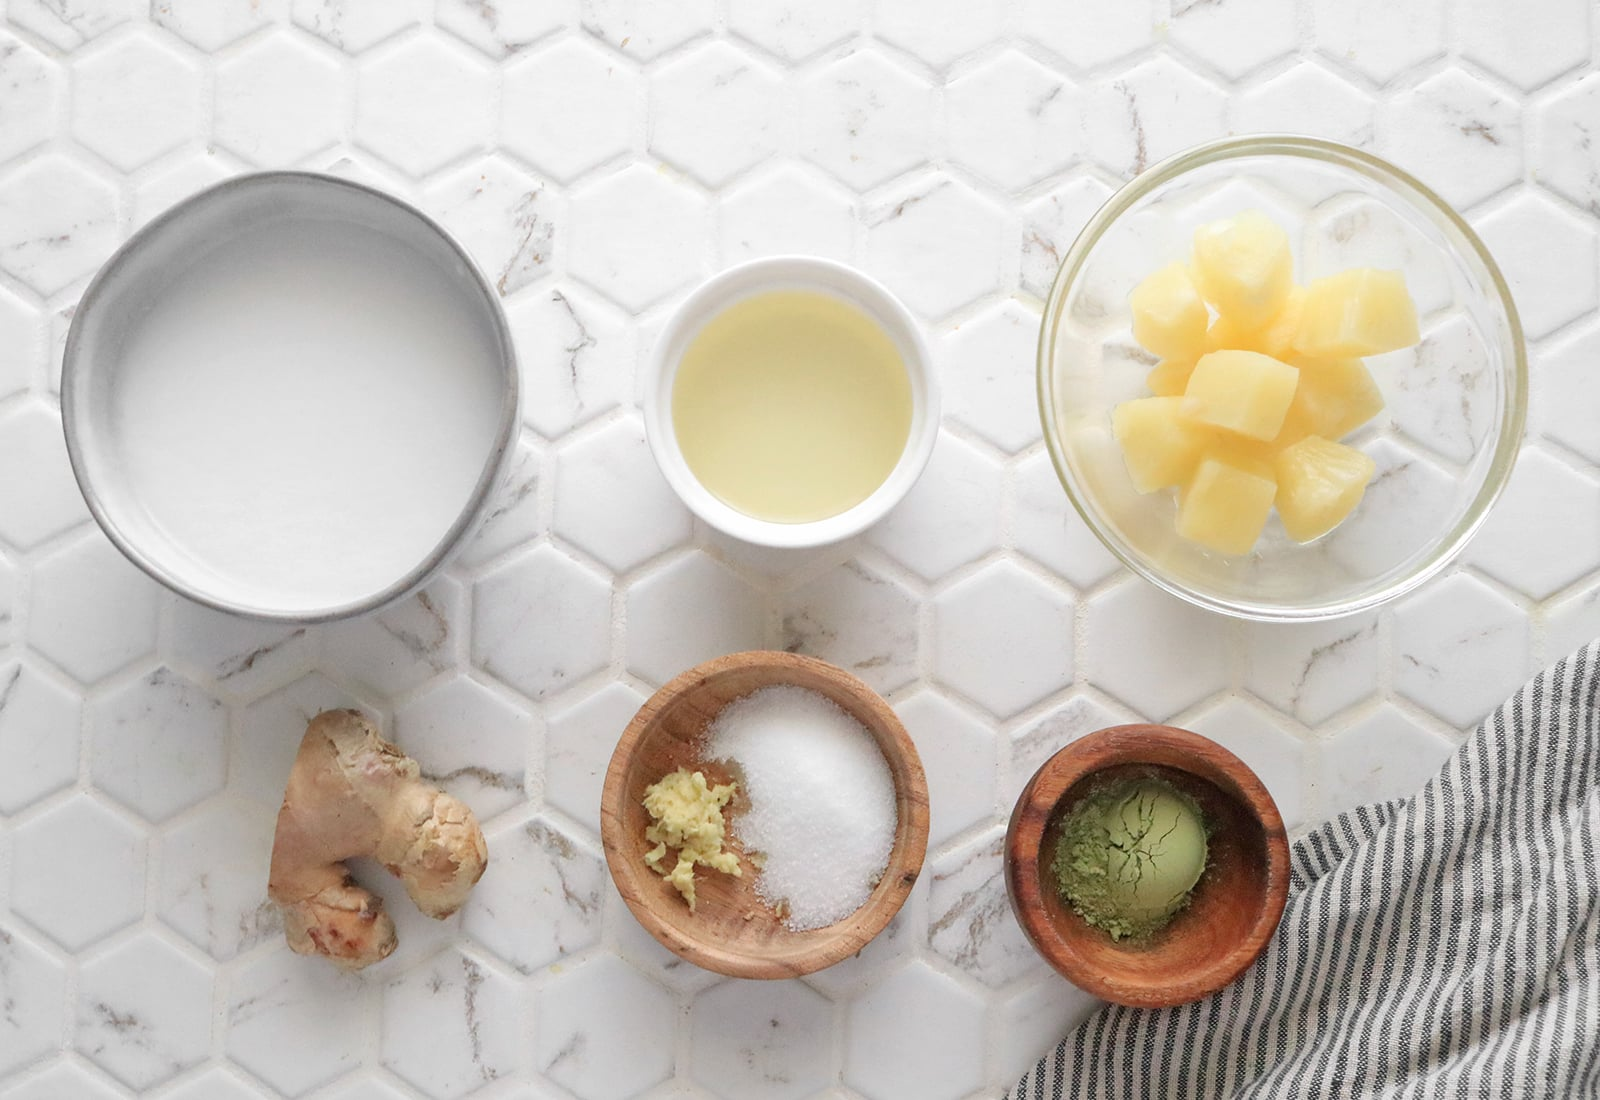 Ingredients for iced pineapple matcha latte